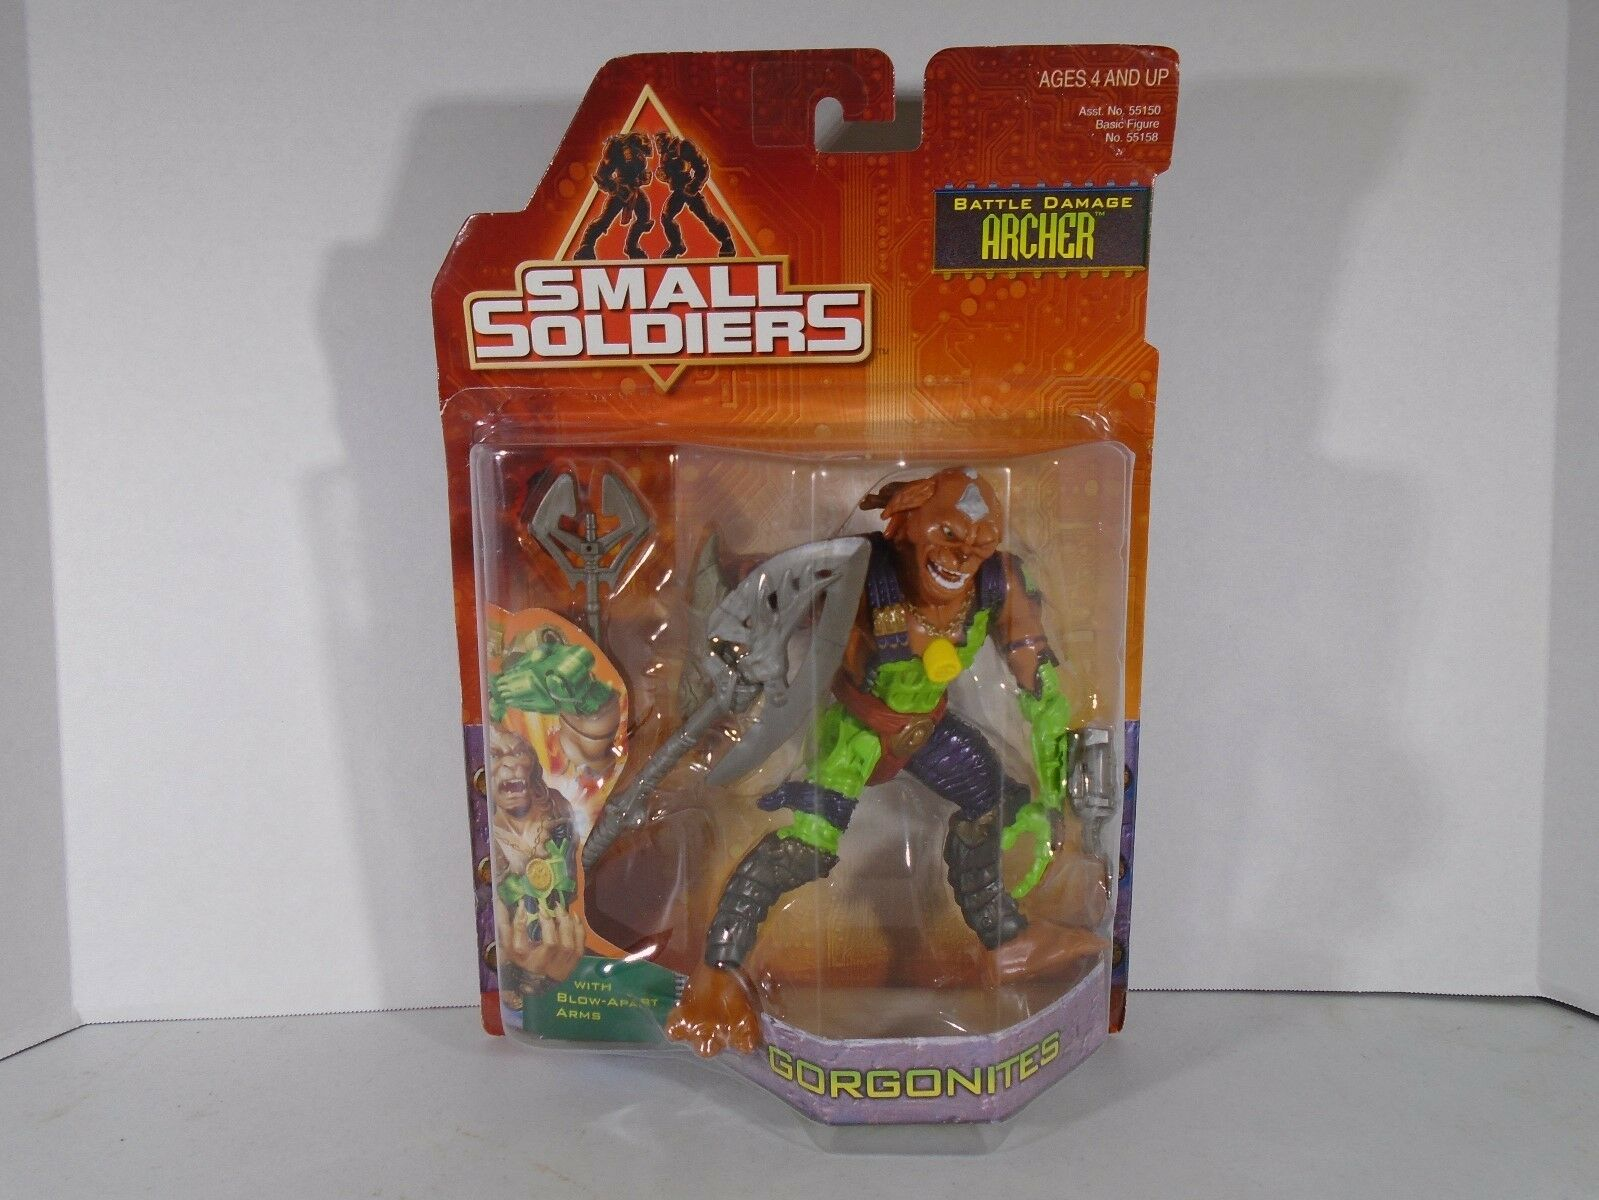 1998 HASBRO--SMALL SOLDIERS MOVIE--6.5  BATTLE DAMAGE ARCHER FIGURE  NEW